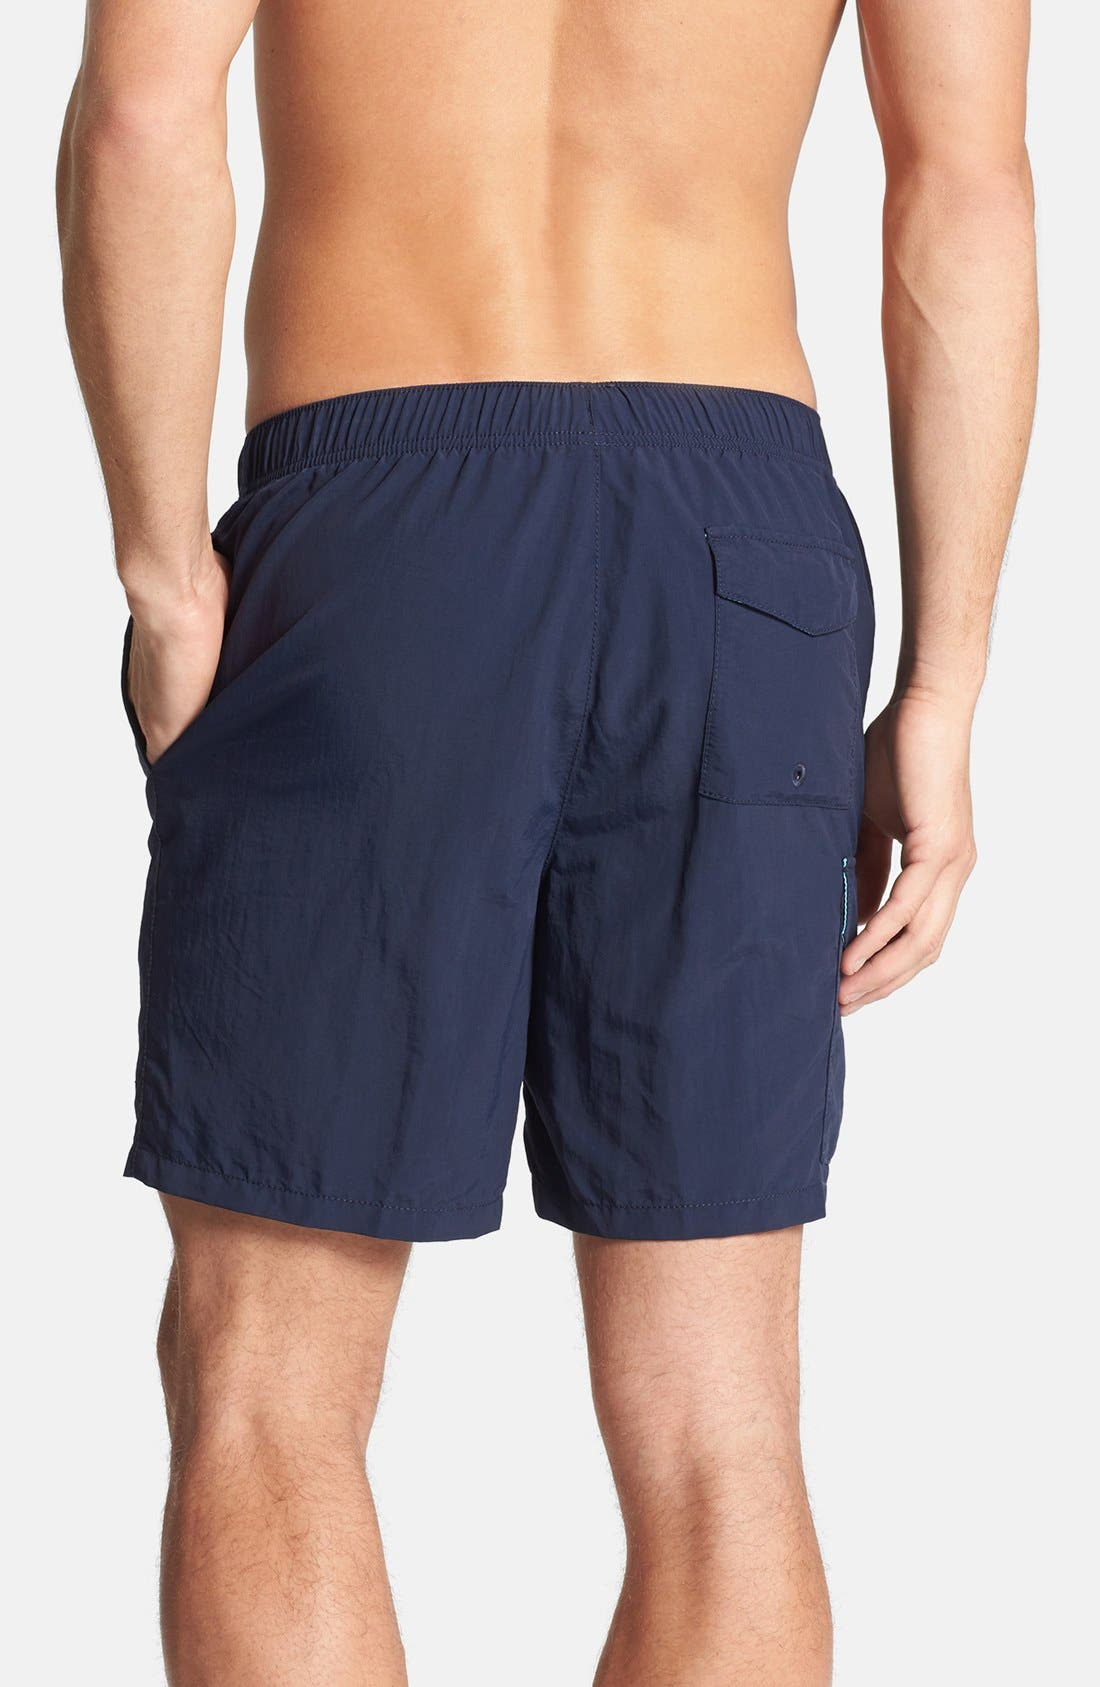 'The Naples Happy Go Cargo' Swim Trunks,                             Alternate thumbnail 5, color,                             406